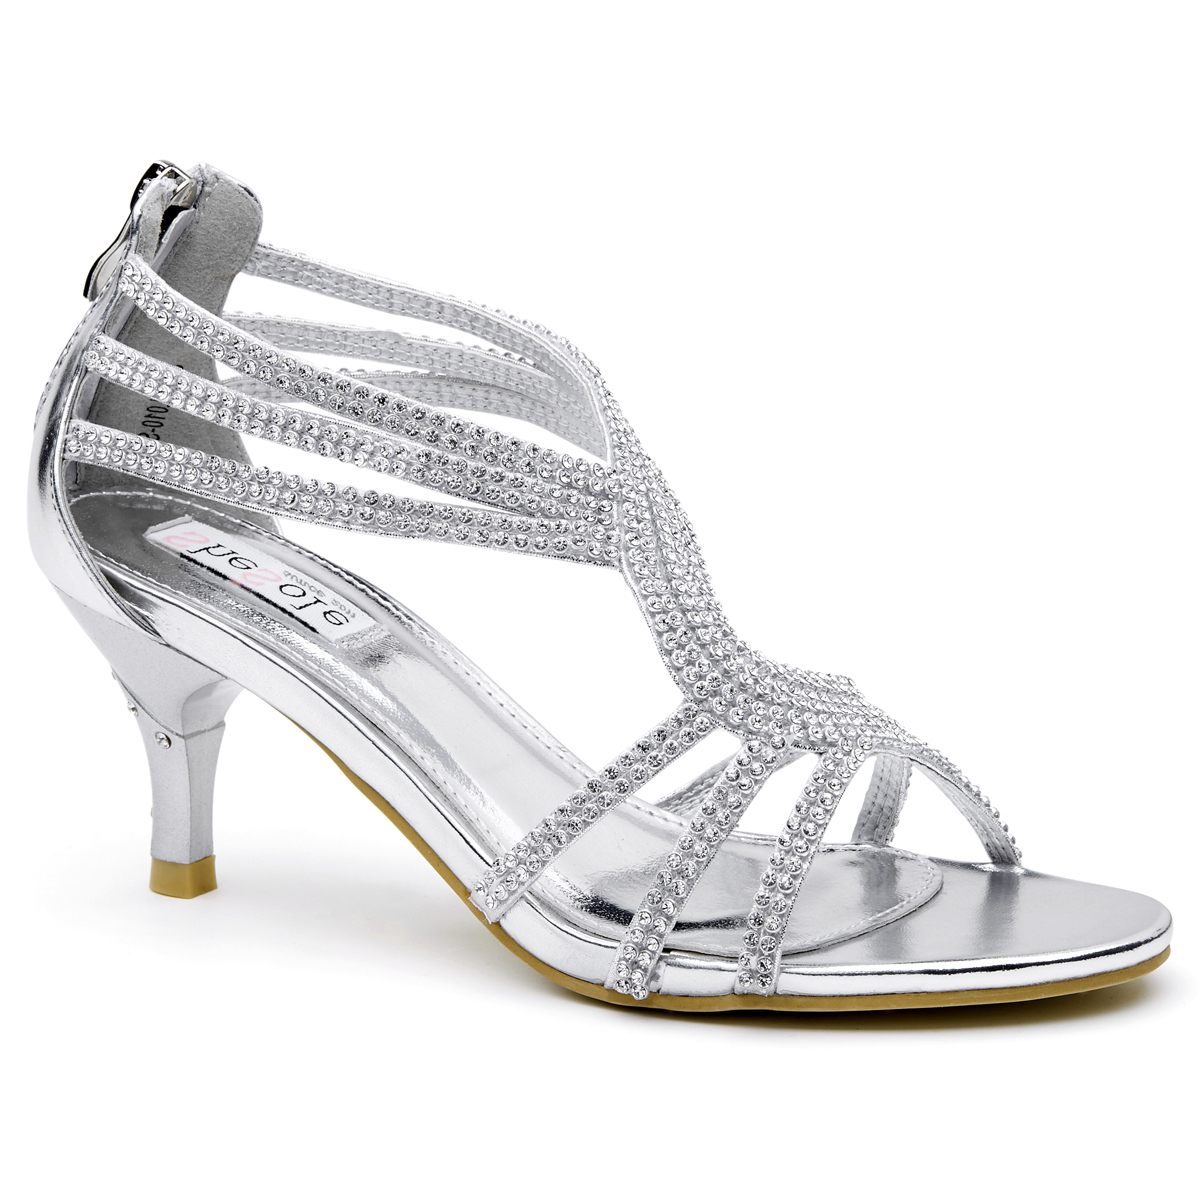 Details about  /Womens Wedding Bridal Mid Heel Glitter Rhinestone Dress Casual Sandal Shoes Top